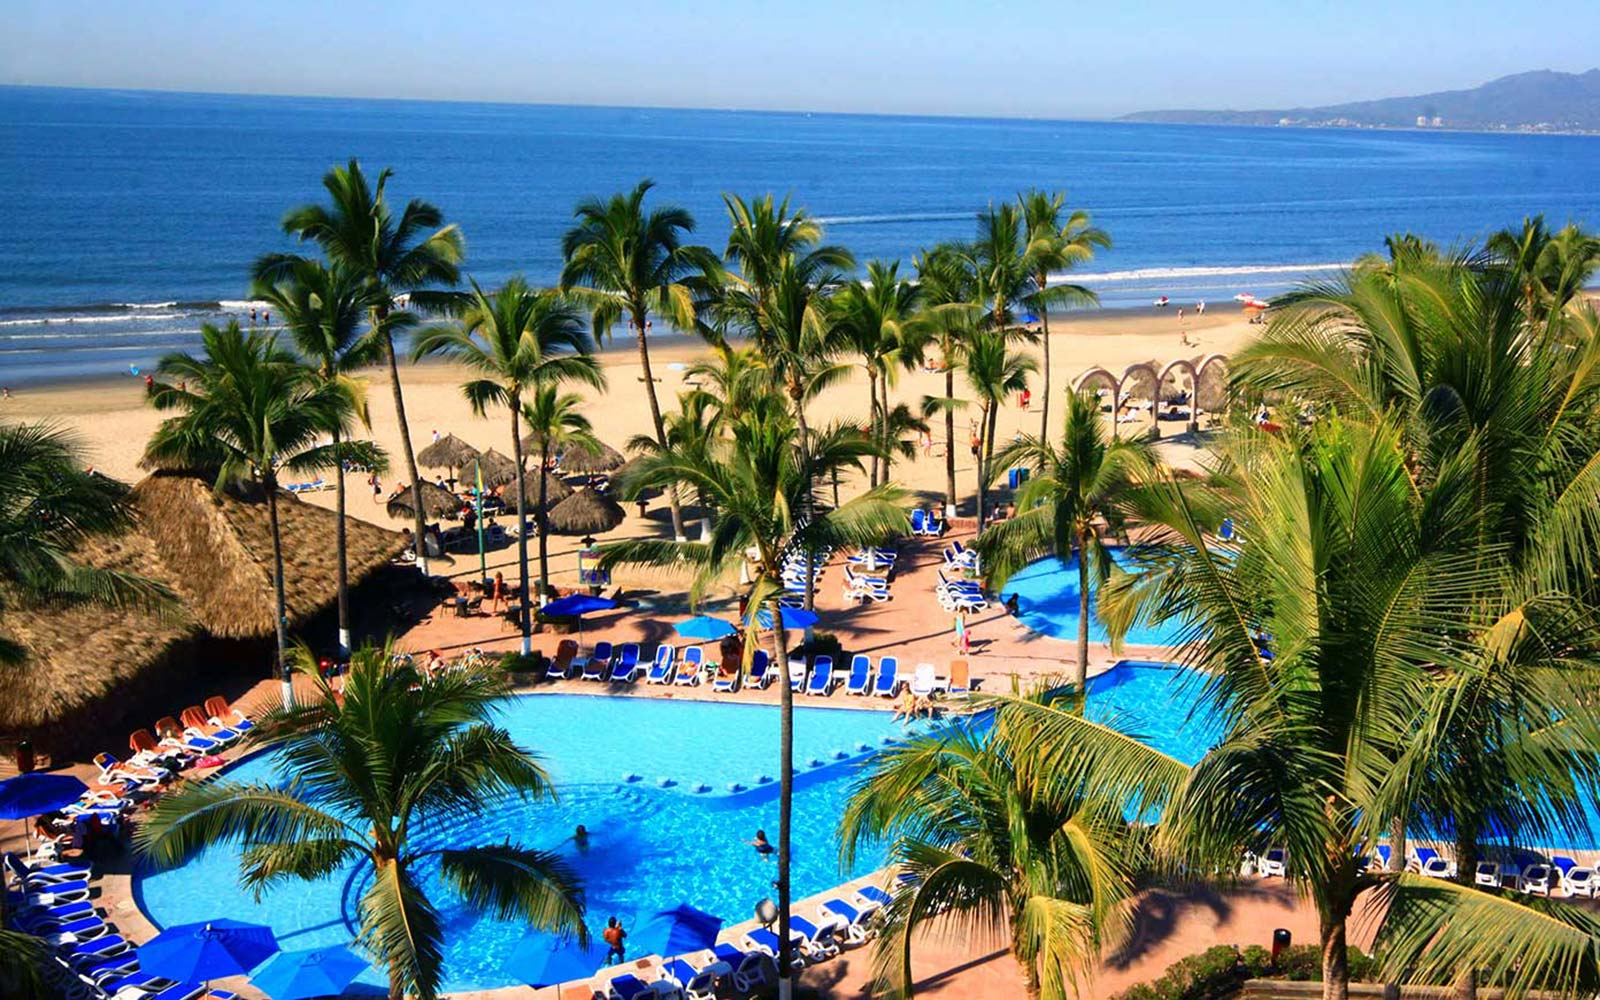 Get 40% off Your Stay at This All-inclusive Resort in Riviera Nayarit